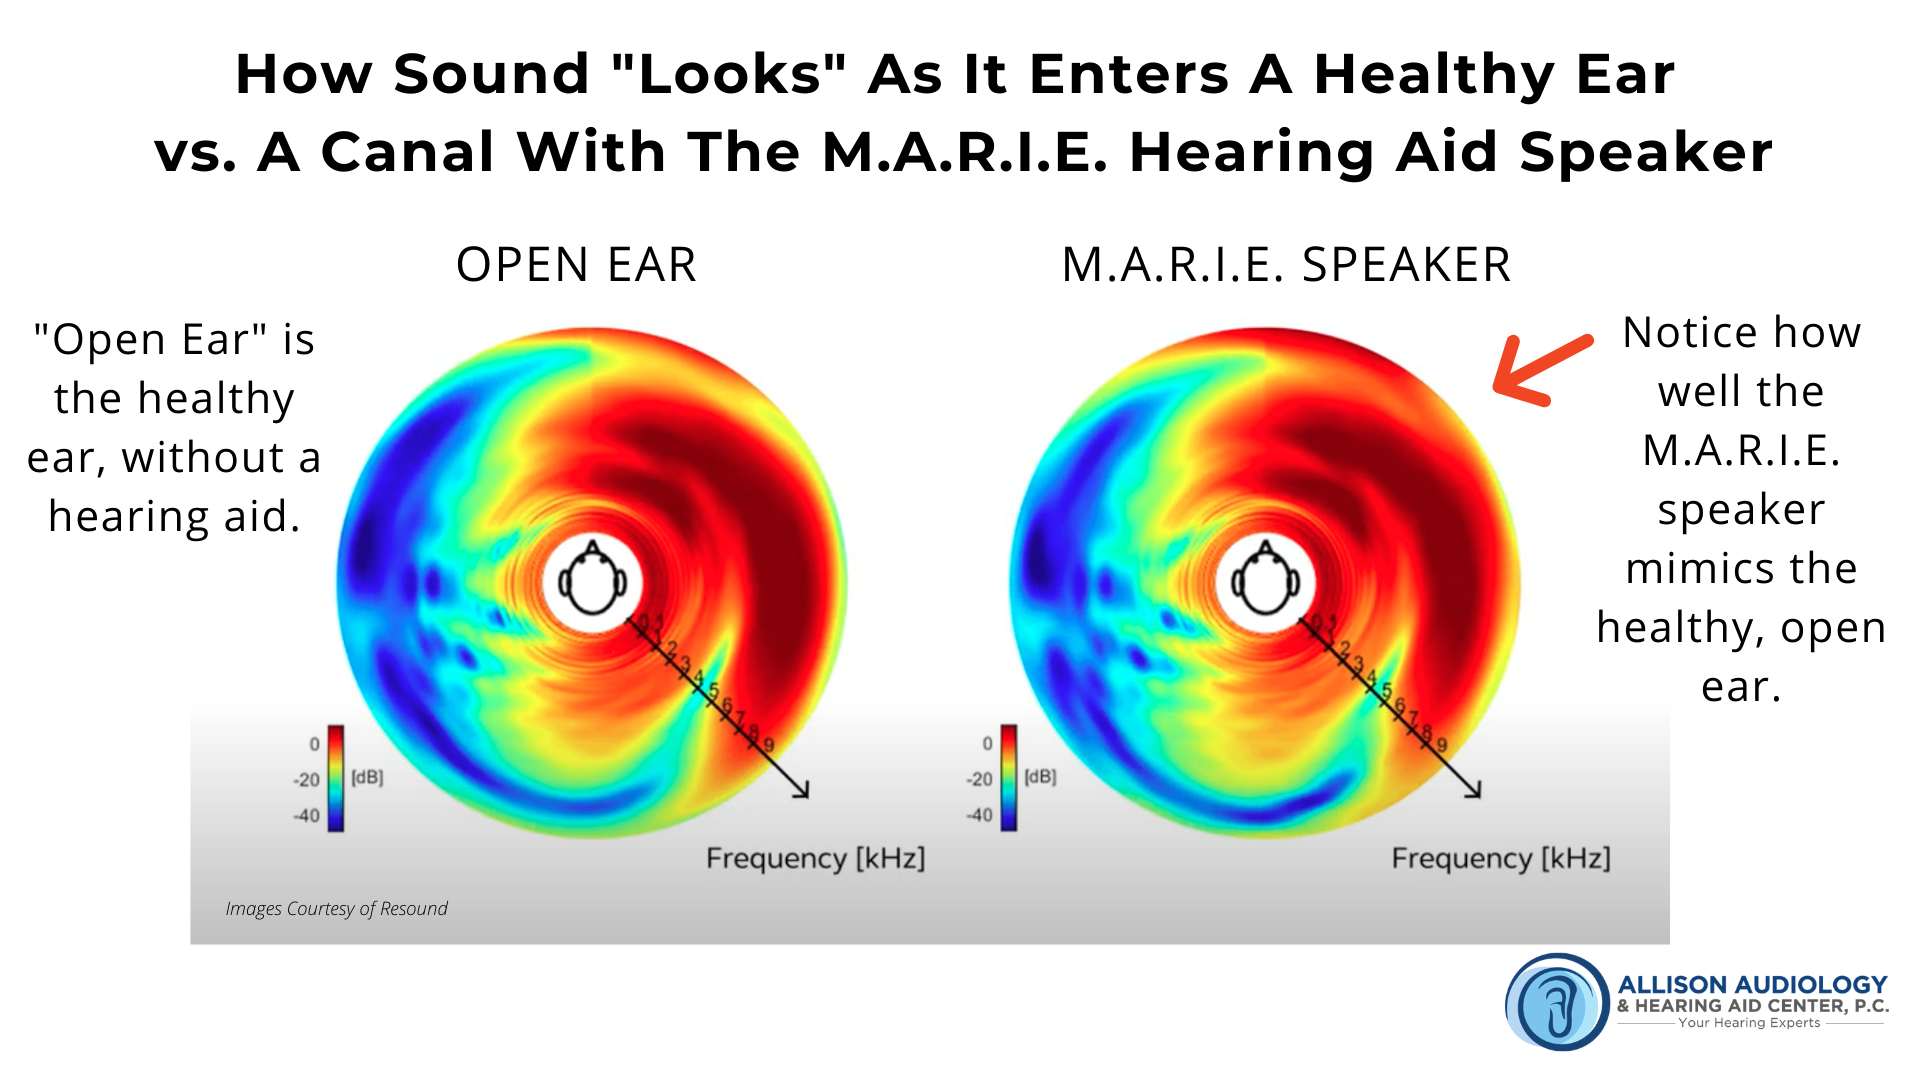 3rd Image of Sound in Healthy Ear vs MARIE Speaker B Roll.png